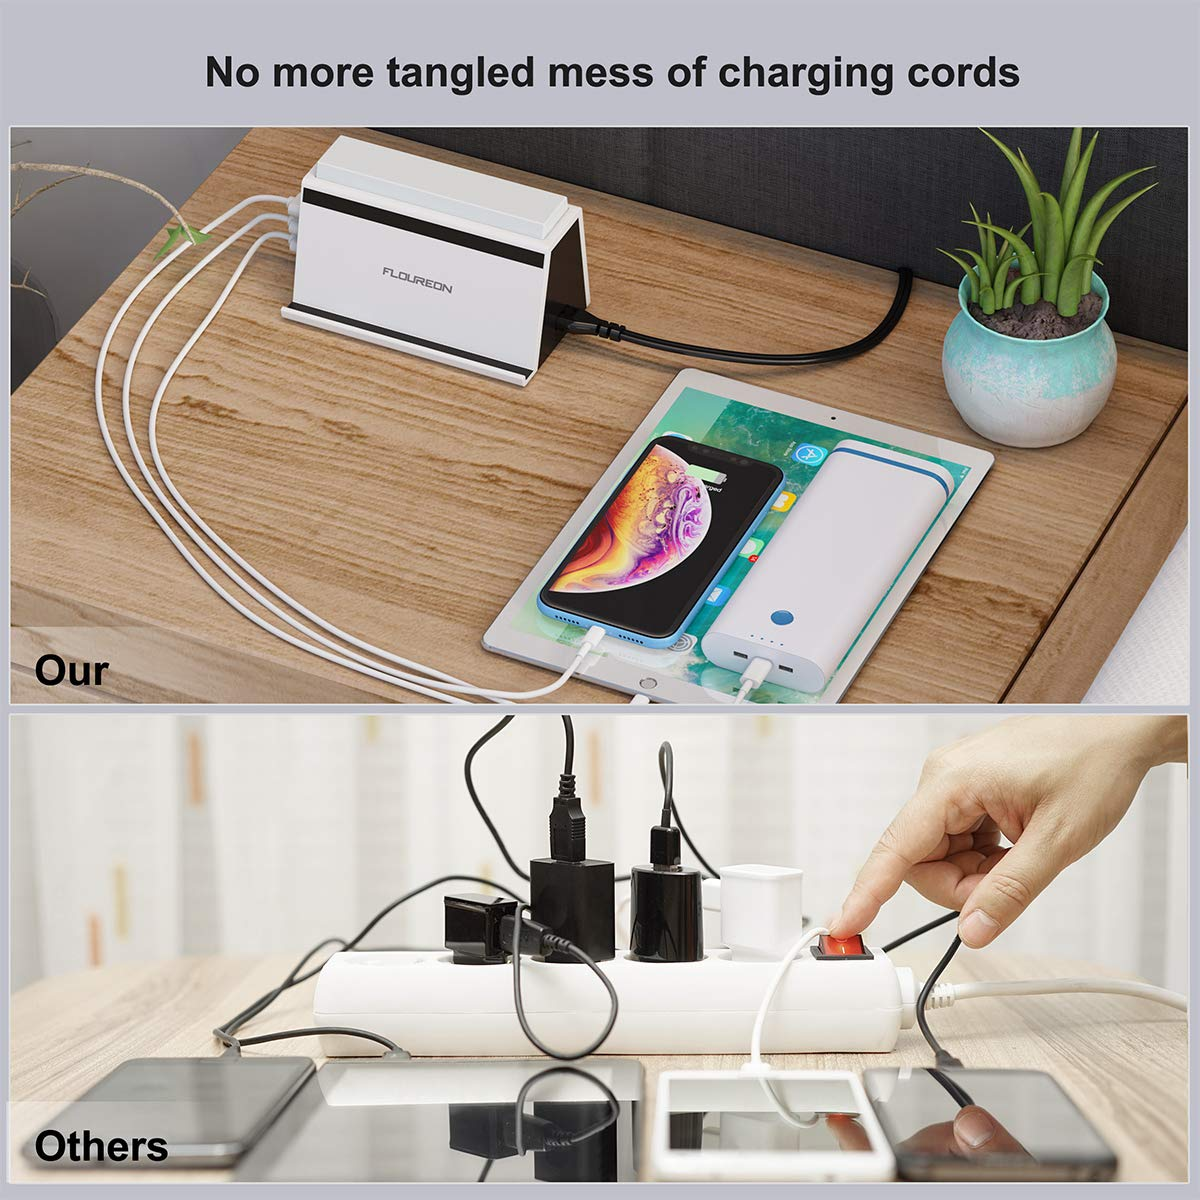 FLOUREON Multi USB Charging Station Wireless Phone Charger 4A/20W 4 Ports Multi Device Phone Stand Desktop Multi-port USB Charger with LED Light for iPhone 8, iPhone X, Samsung Galaxy S6